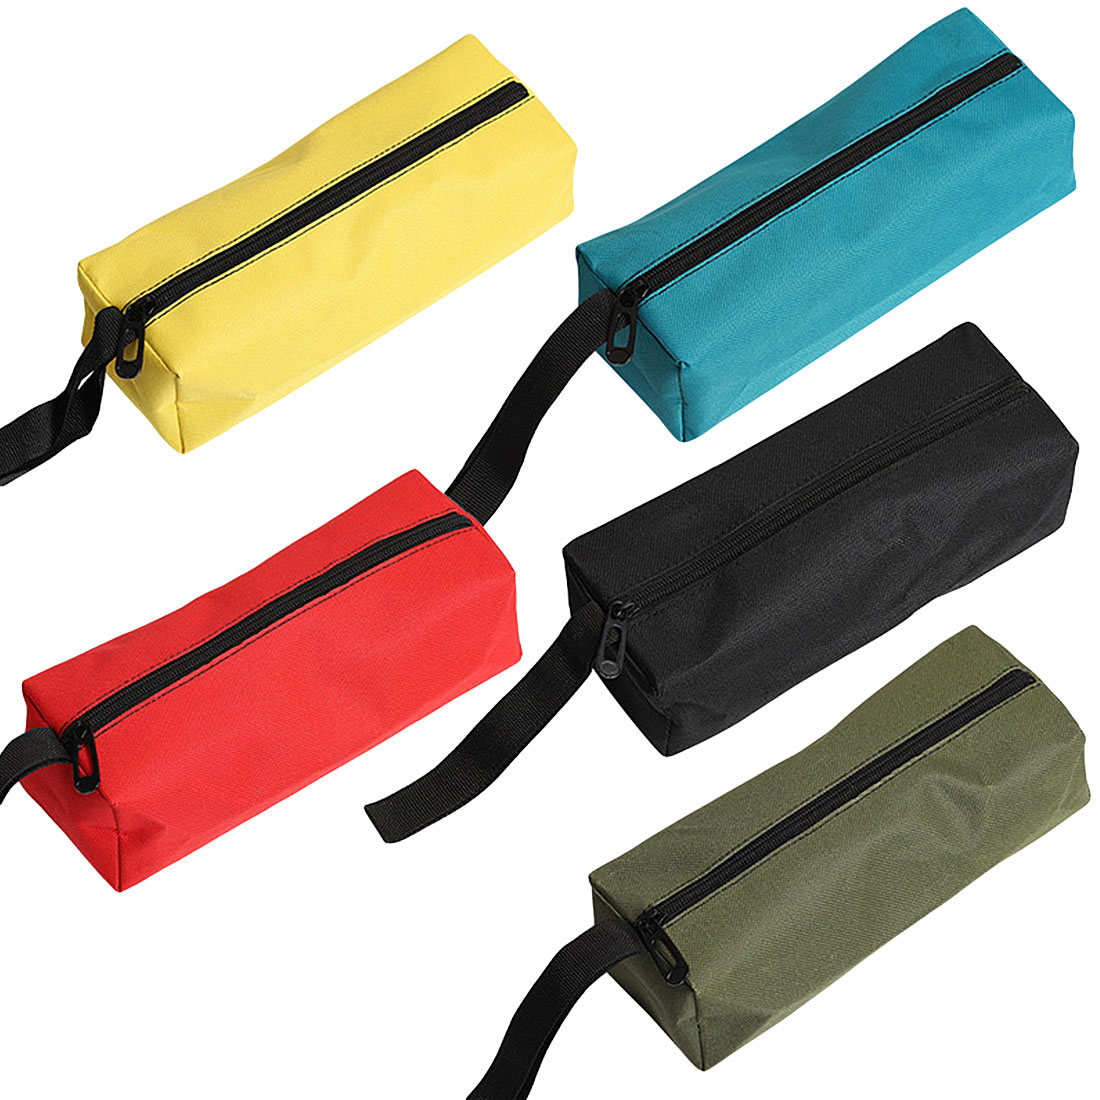 Portable Hand Tool Bag Oxford Canvas Waterproof Storage Screws Nails Drill Bit Metal Parts Bag Outdoor Travel Pouch Bag